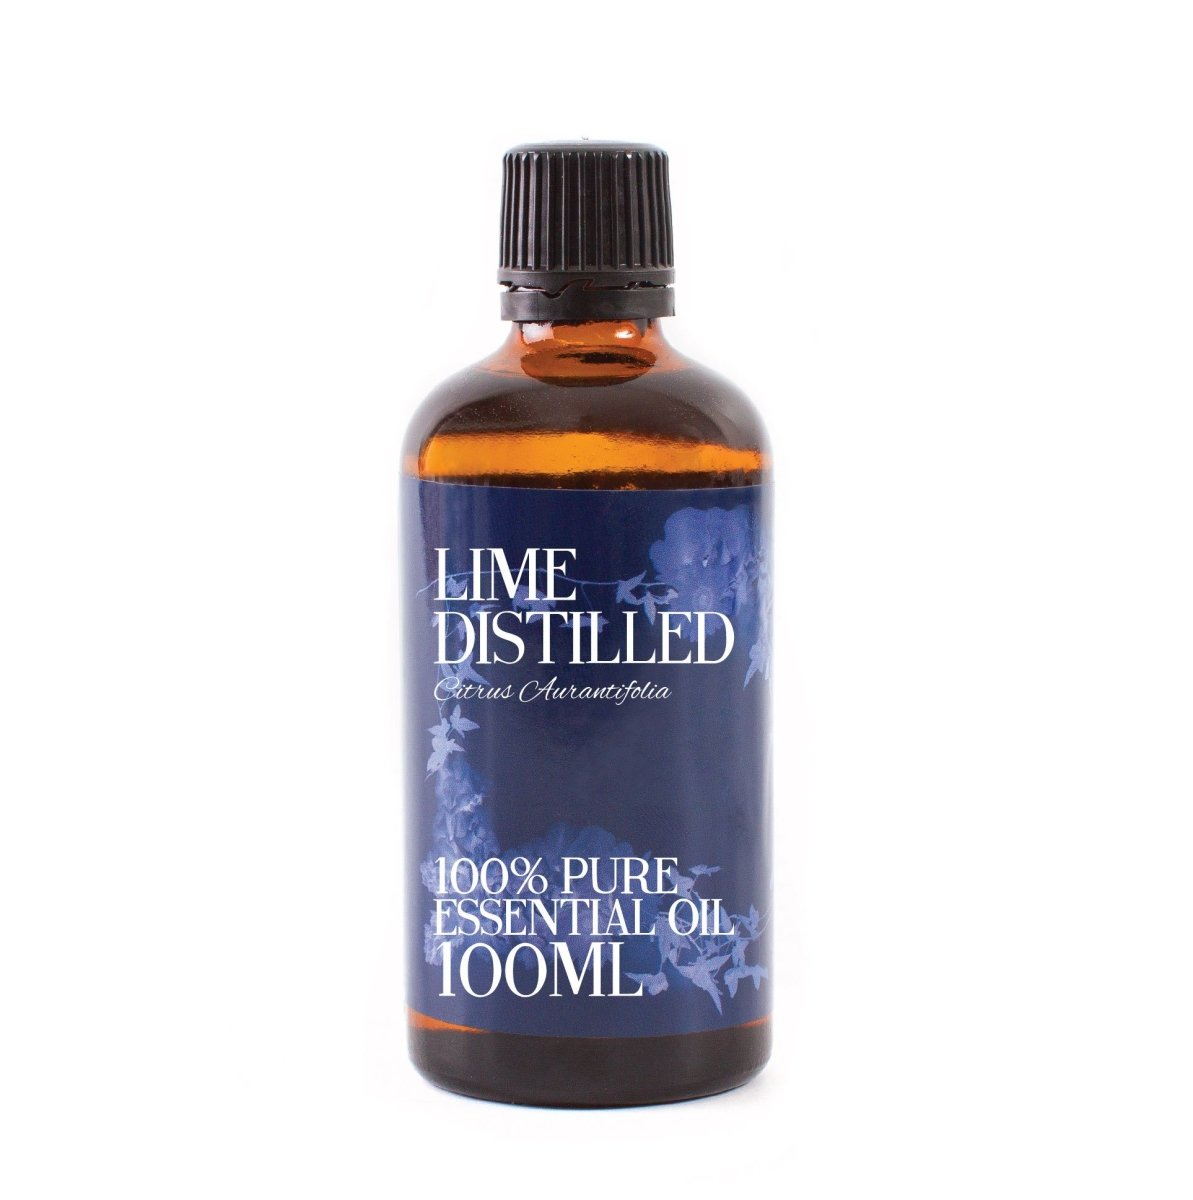 Lime Distilled Essential Oil - Mystic Moments UK